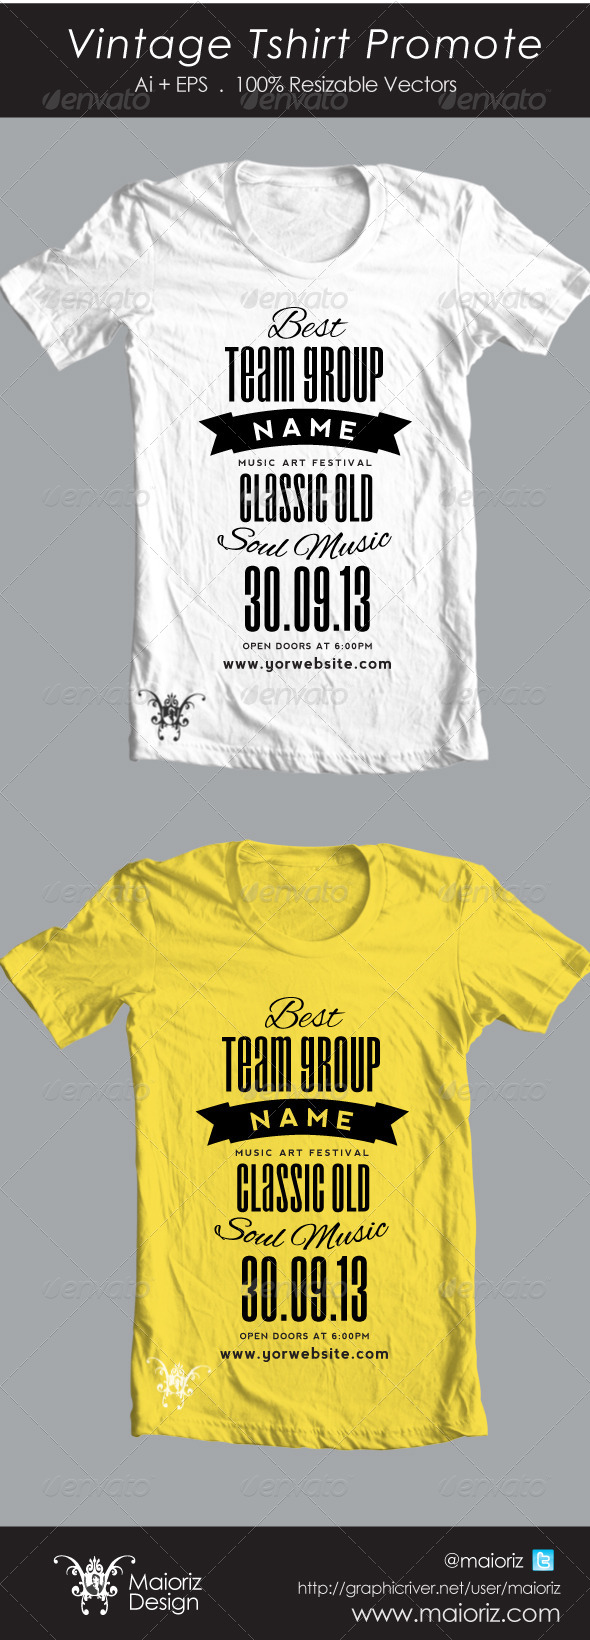 Vintage Promote Tshirt - Events T-Shirts